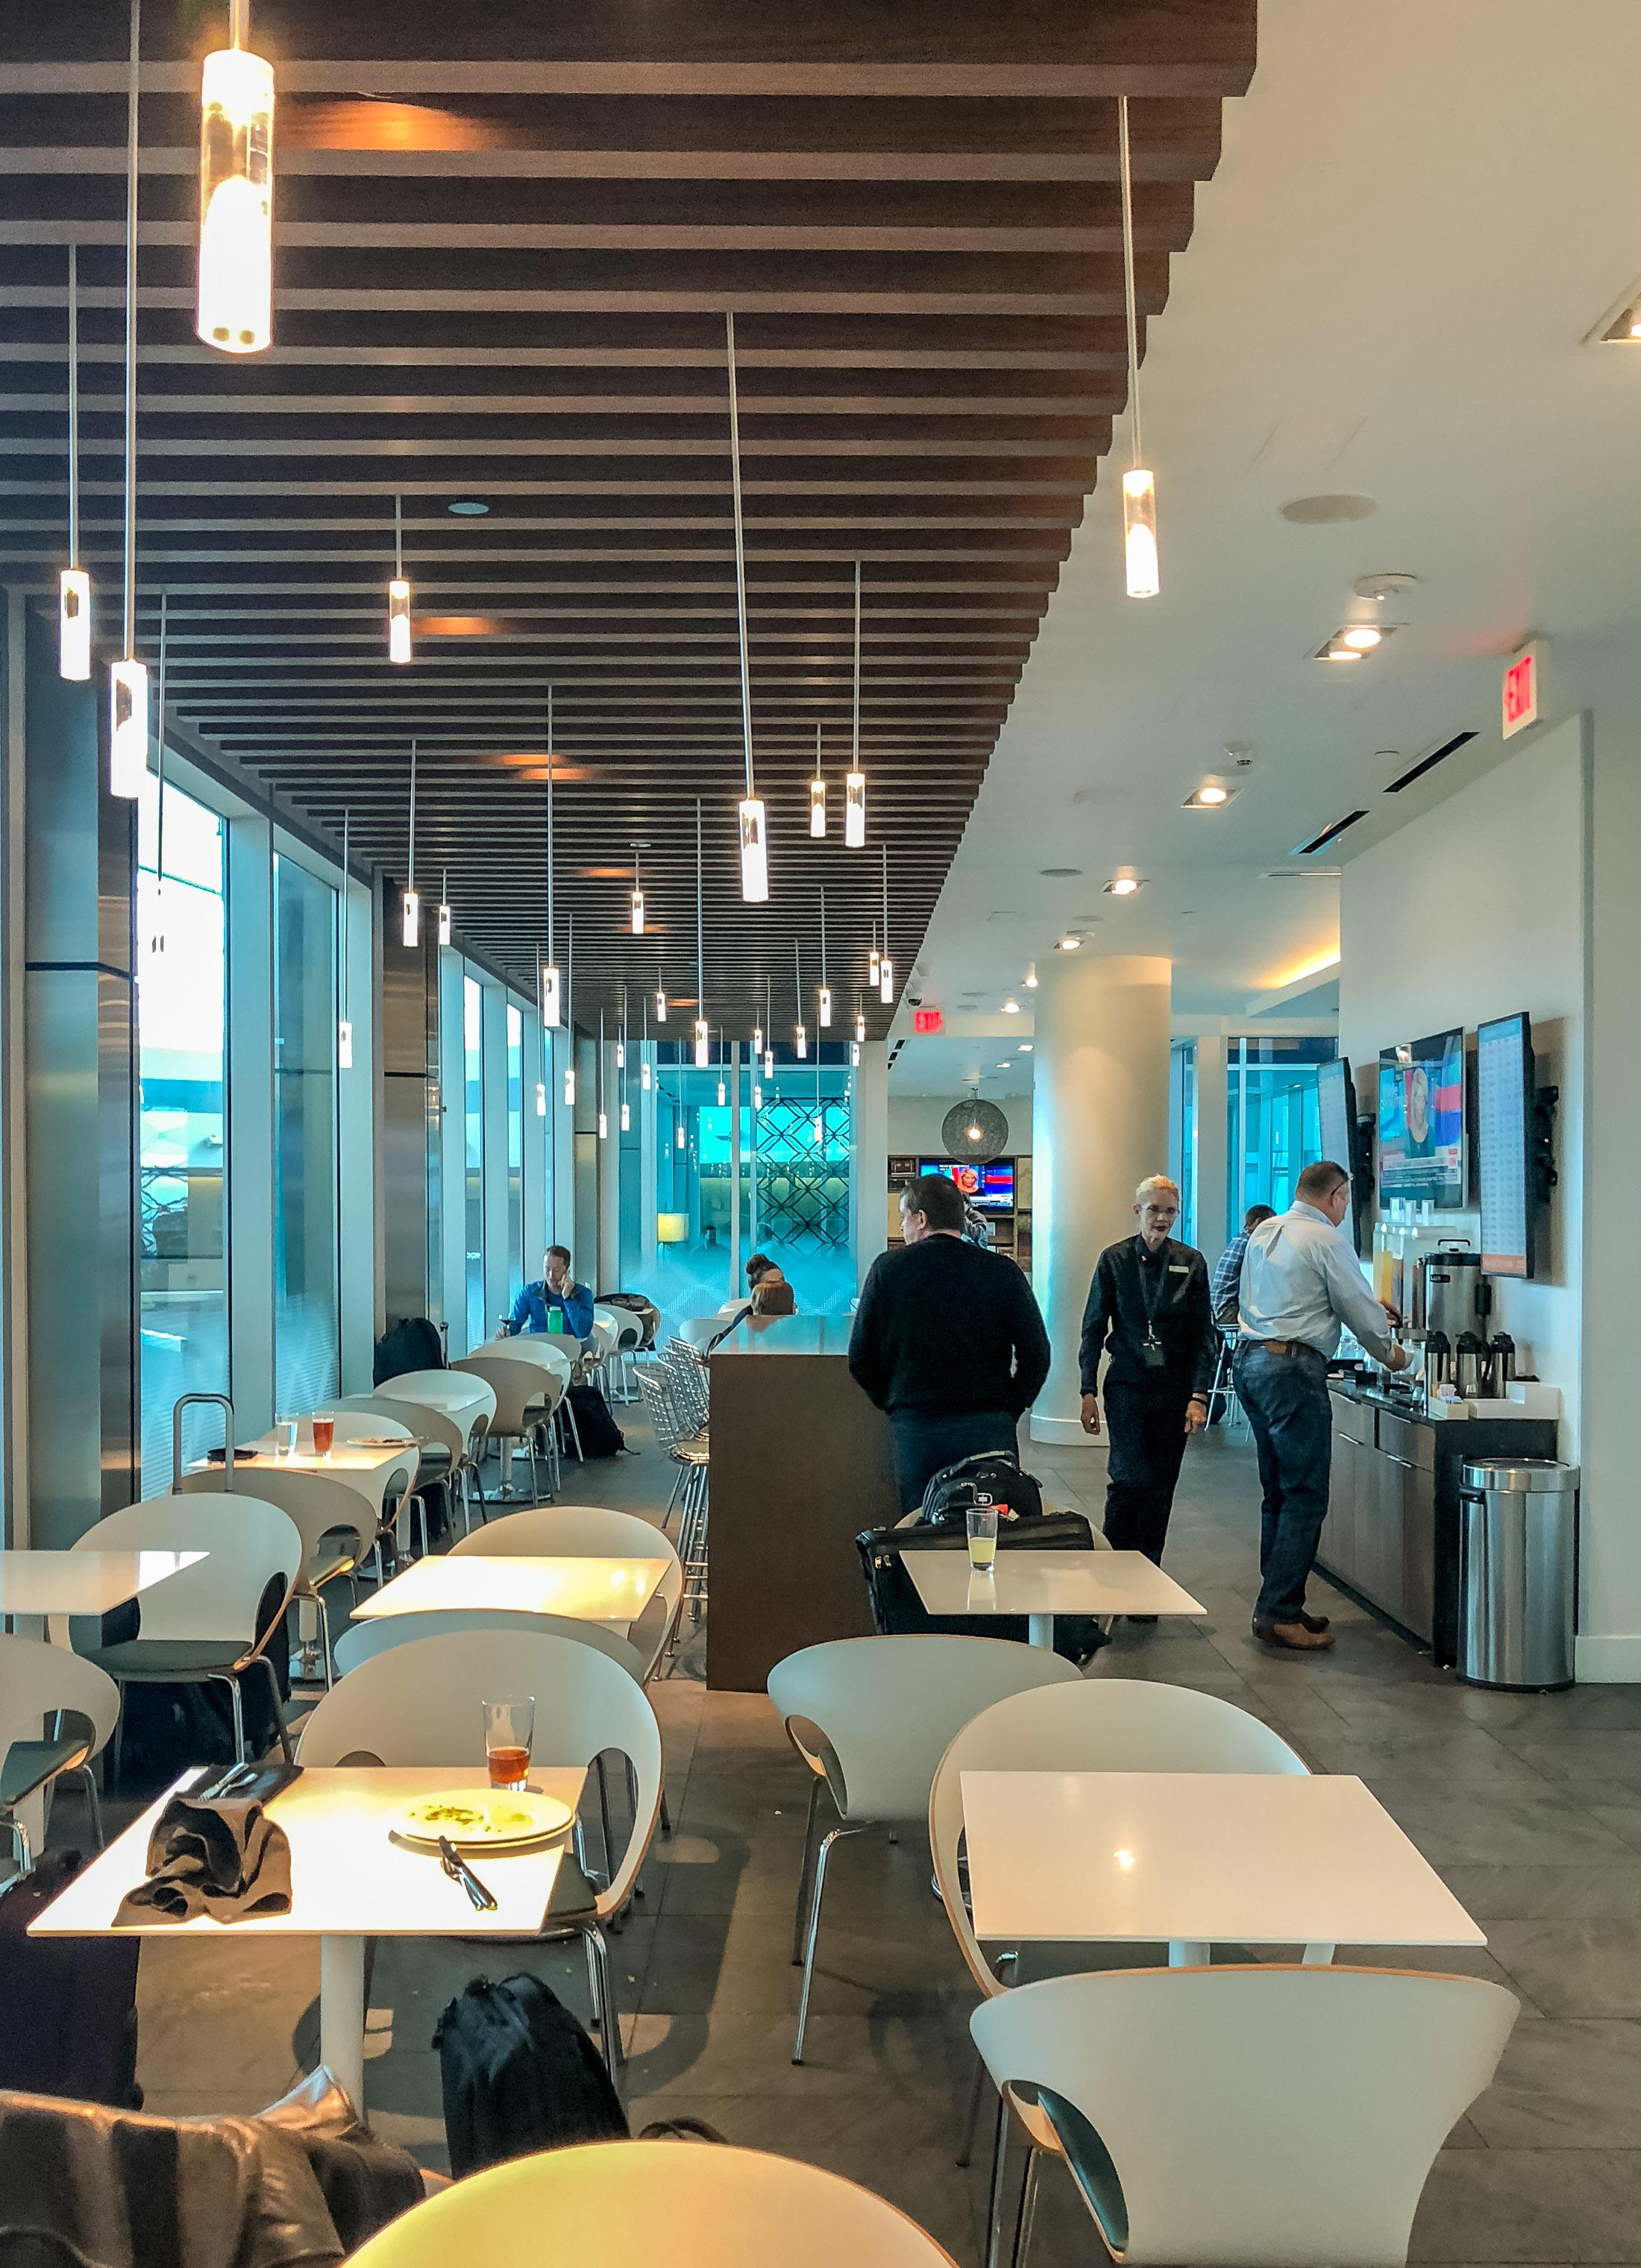 The DFW American Express Centurion Lounge dining area.